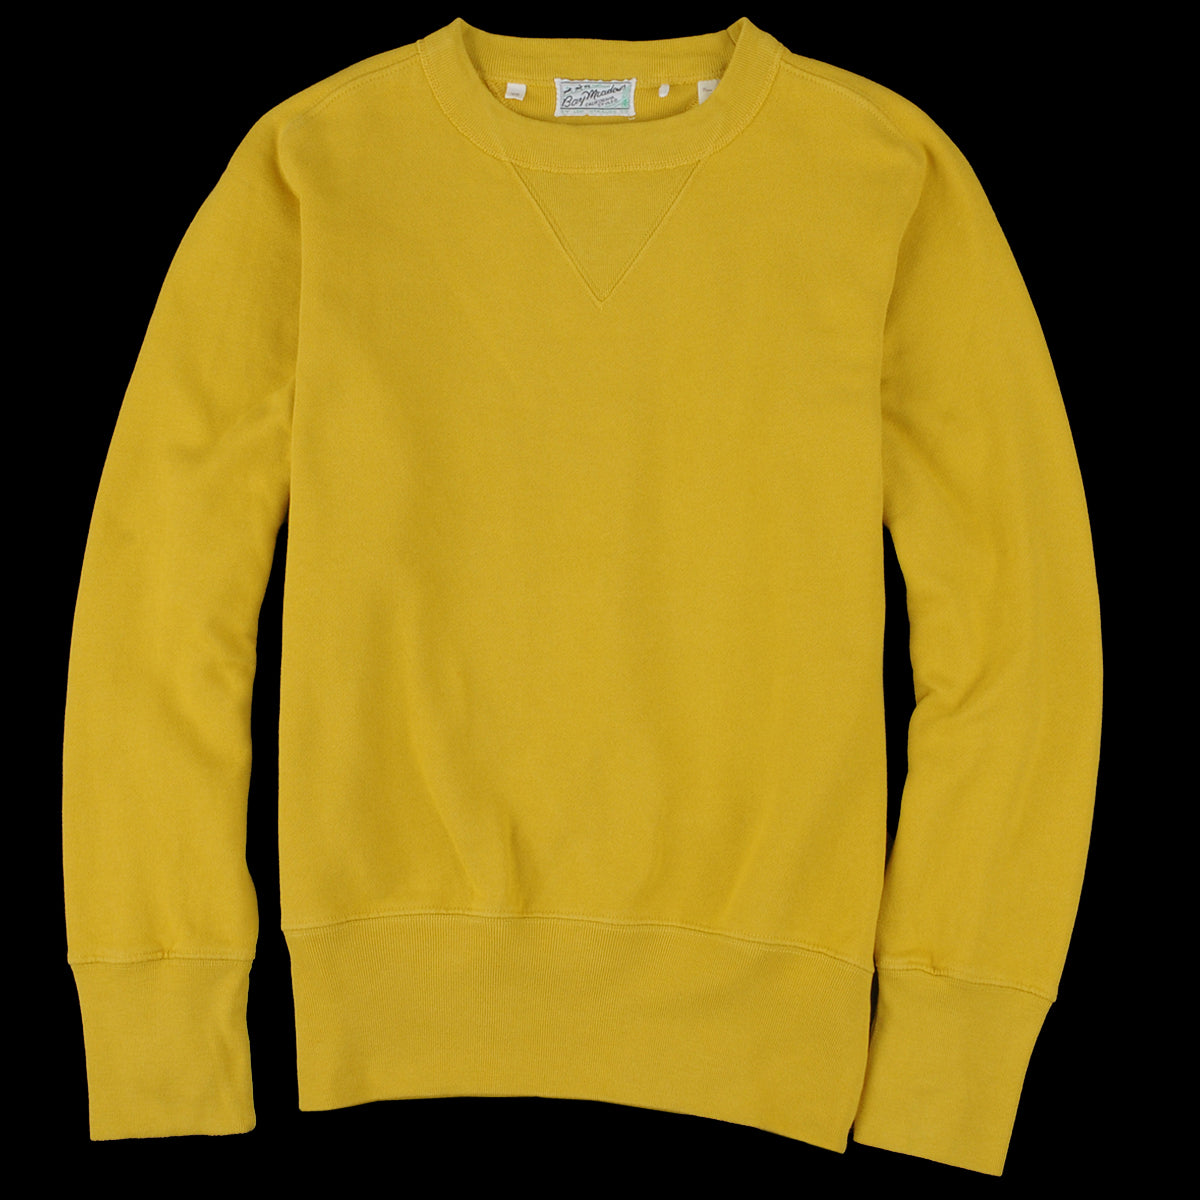 99f5b4c0 Bay Meadows Sweatshirt in Lemon Tree